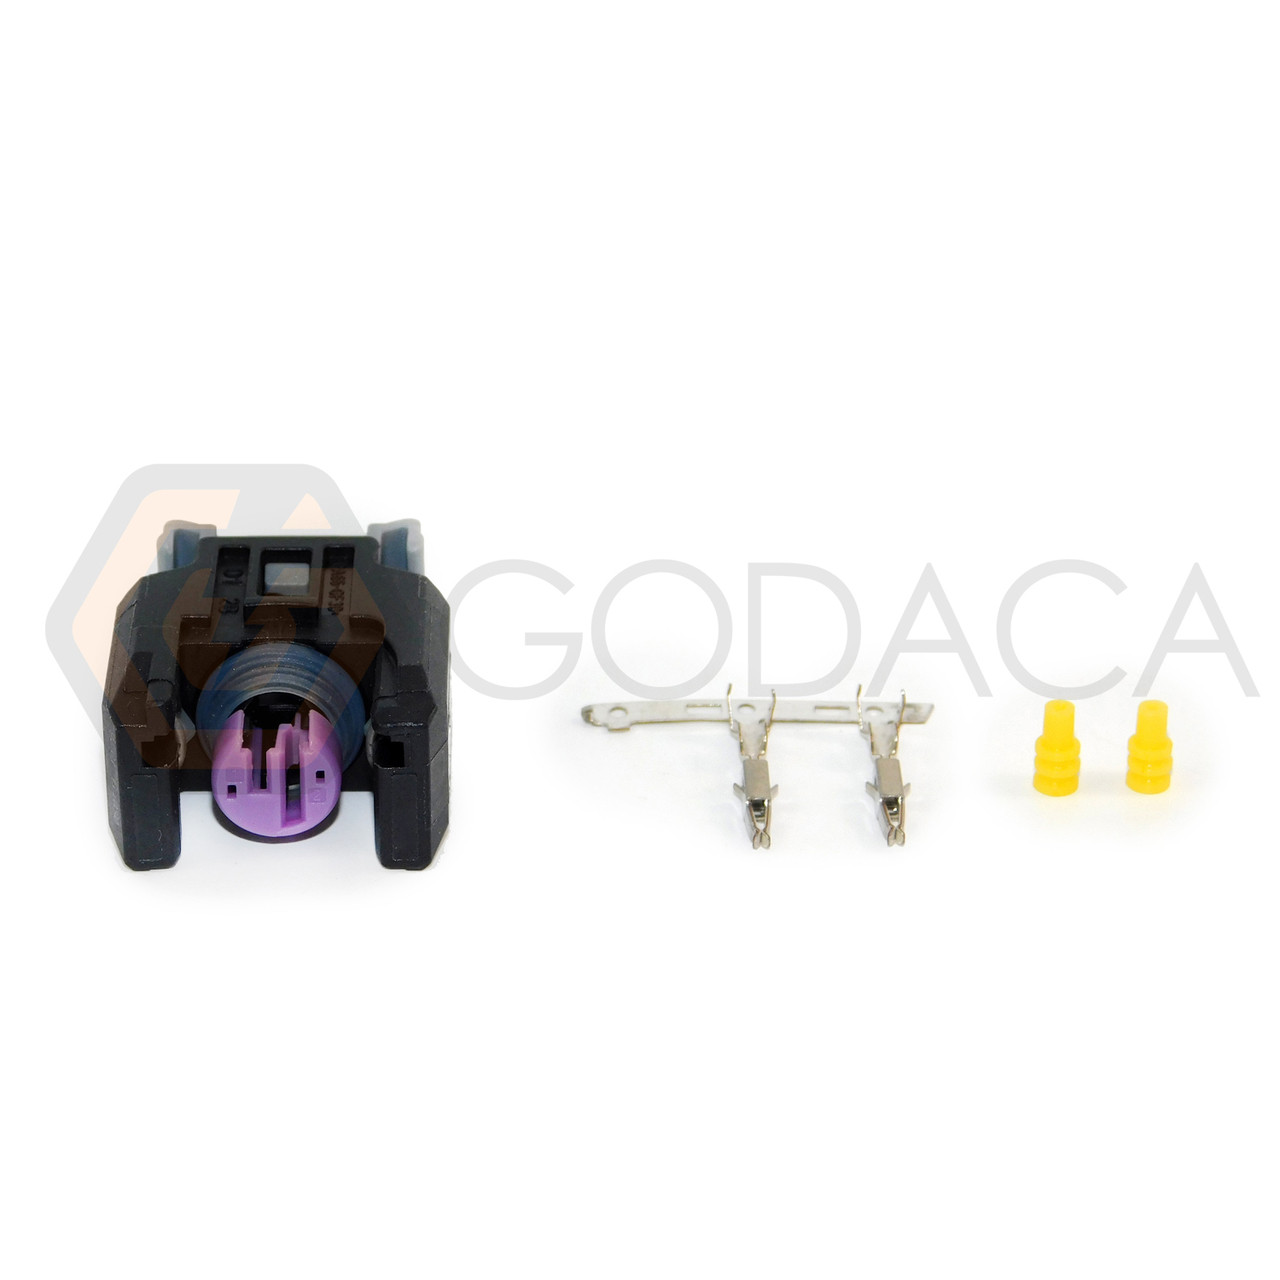 hight resolution of 1x connector 2 way 2 pin for fuel injector 13816706 delphi w out wire godaca llc